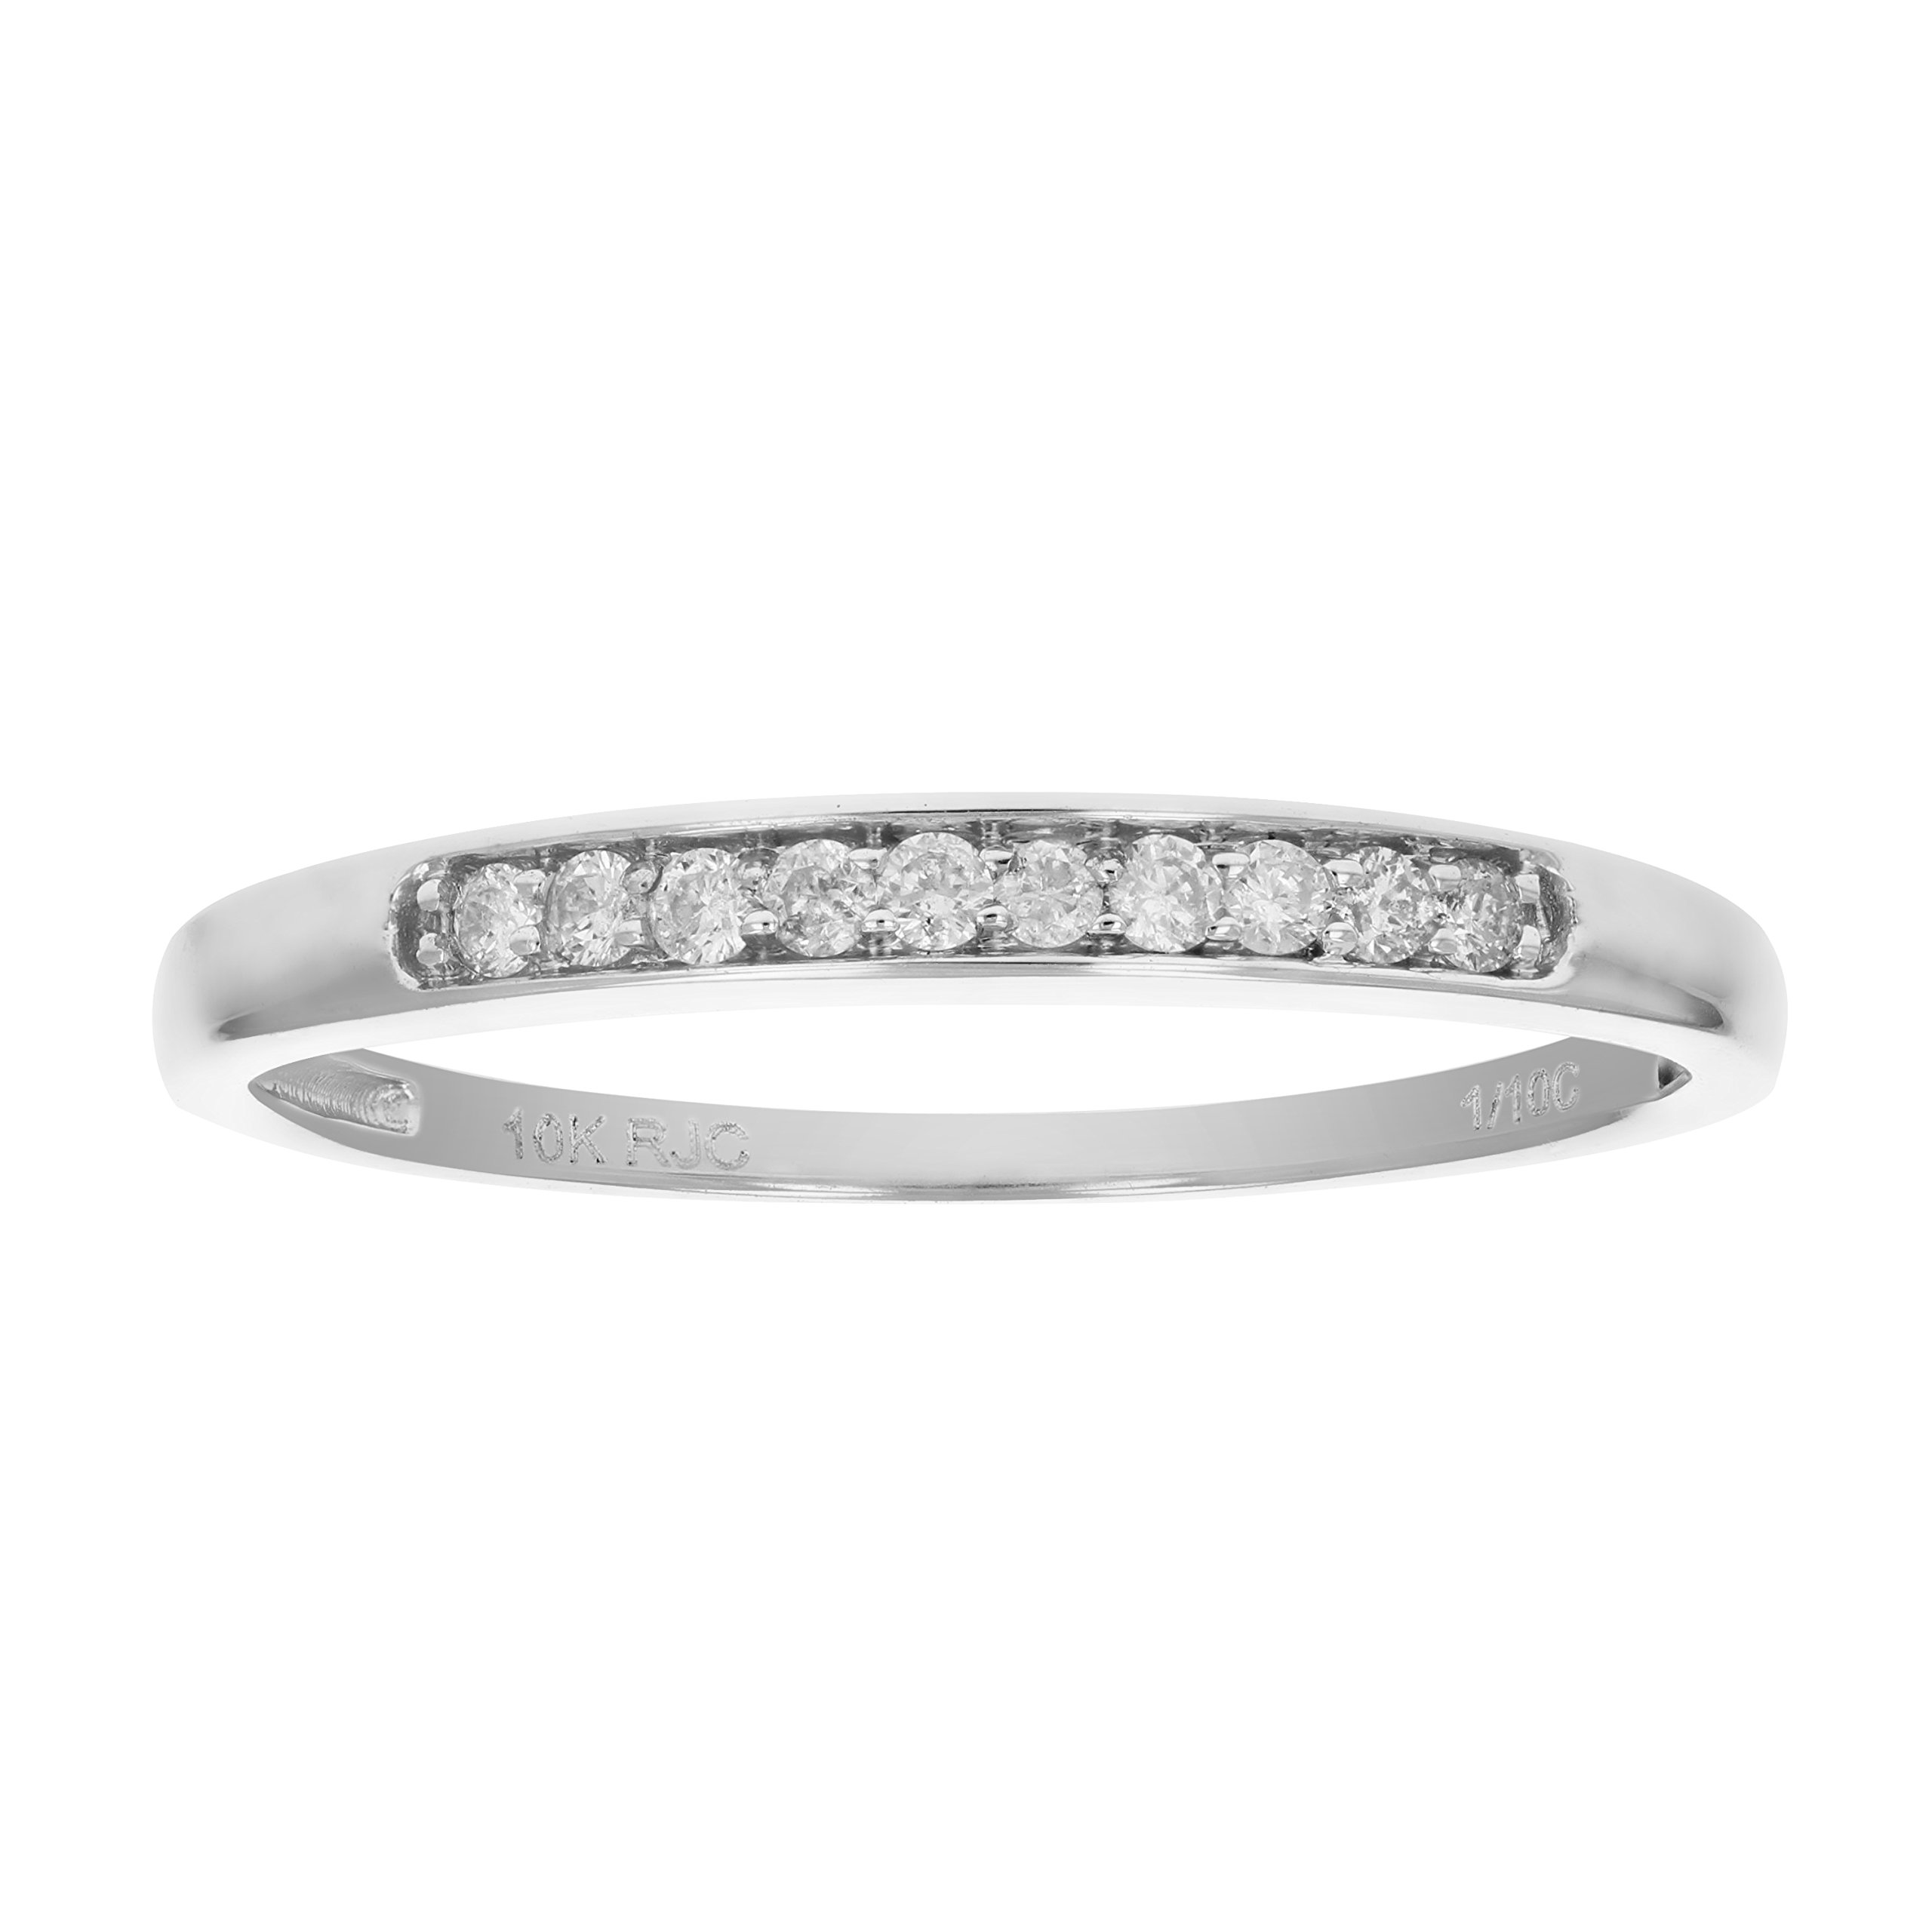 1/10 cttw Diamond Wedding Band 10K White Gold Size 10